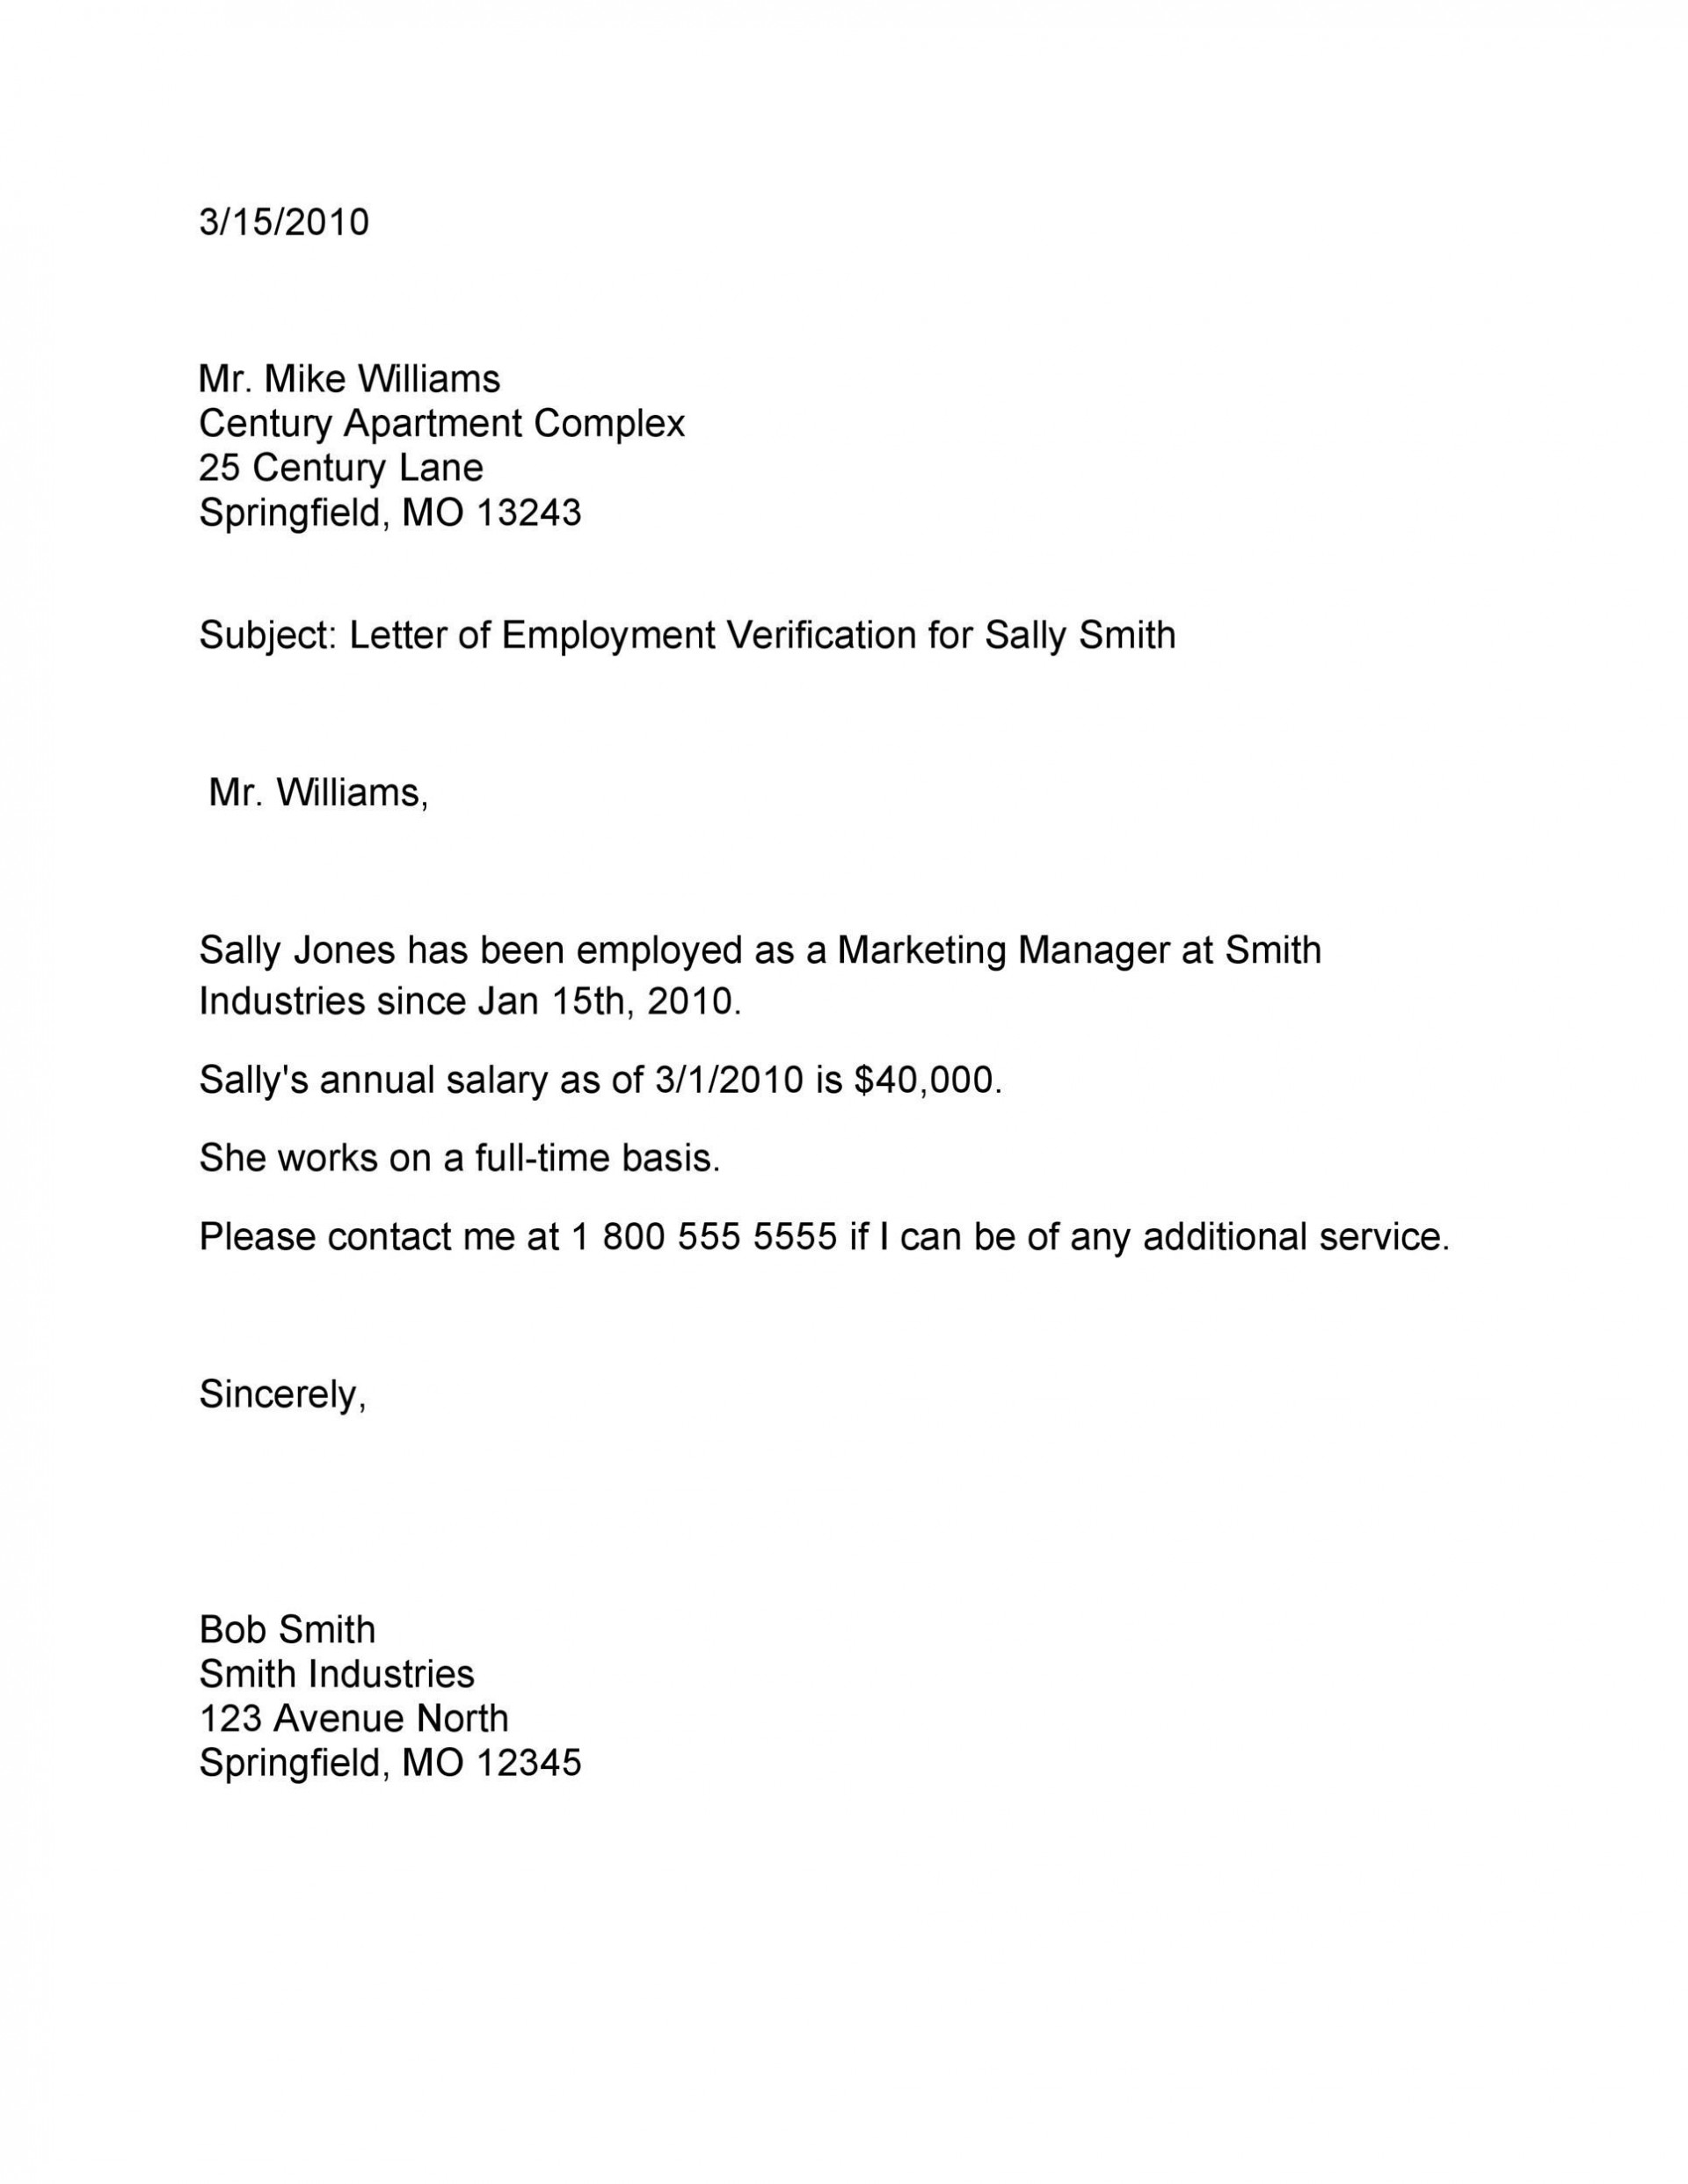 003 Marvelou Confirmation Of Employment Letter Template Nz Example 1920